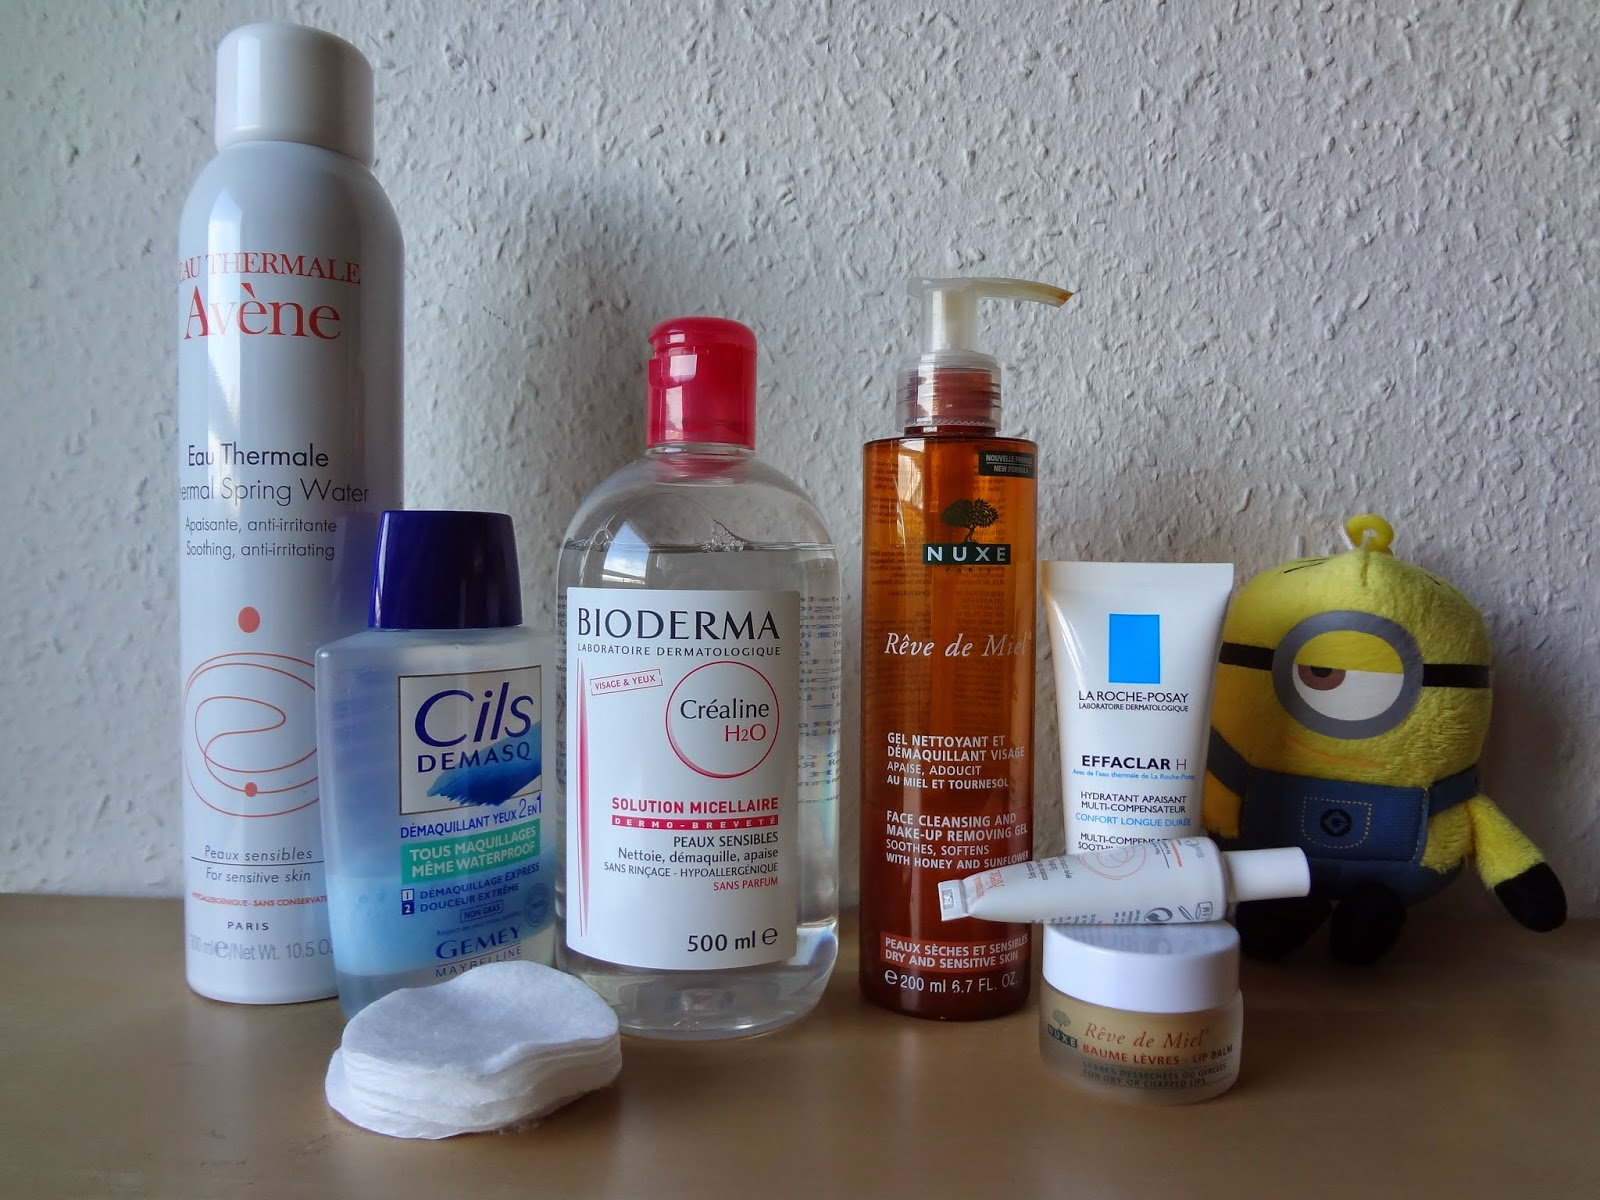 routine-soins-matin-soir-visage-belle-peau-acne-peau-sensible-grasse-imperfections-deshydratee-skincare-routine-morning-evening-products-oily-dehydrated-avene-eau-thermale-soin-contour-yeux-apaisant-hydratant-gemey-cils-demasq-waterproof-demaquiillant-yeux-nettoyage-demaquillage-hydratation-moisturizer-bioderma-crealine-solution-micellaire-micellar-peaux-sensibles-grasses-oily-sensitive-skin-nuxe-reve-miel-gel-nettoyant-demaquiillant-baume-levres-lipbalm-roche-posay-effaclar-h-hydratant-apaisant-compensateur